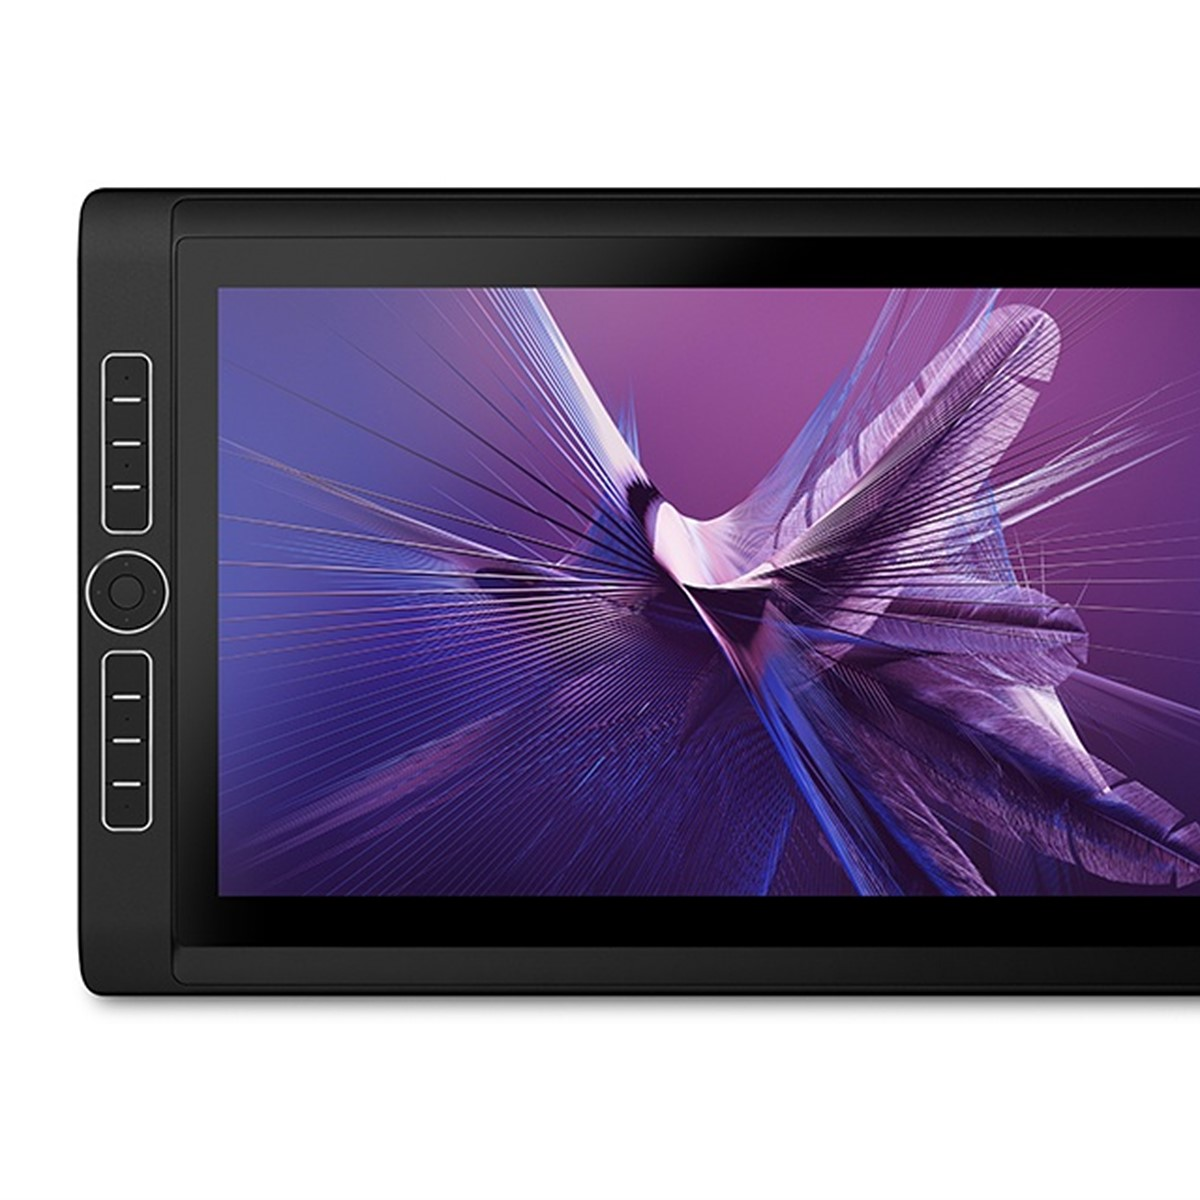 Wacom's new $3,499 tablet features a 15 6